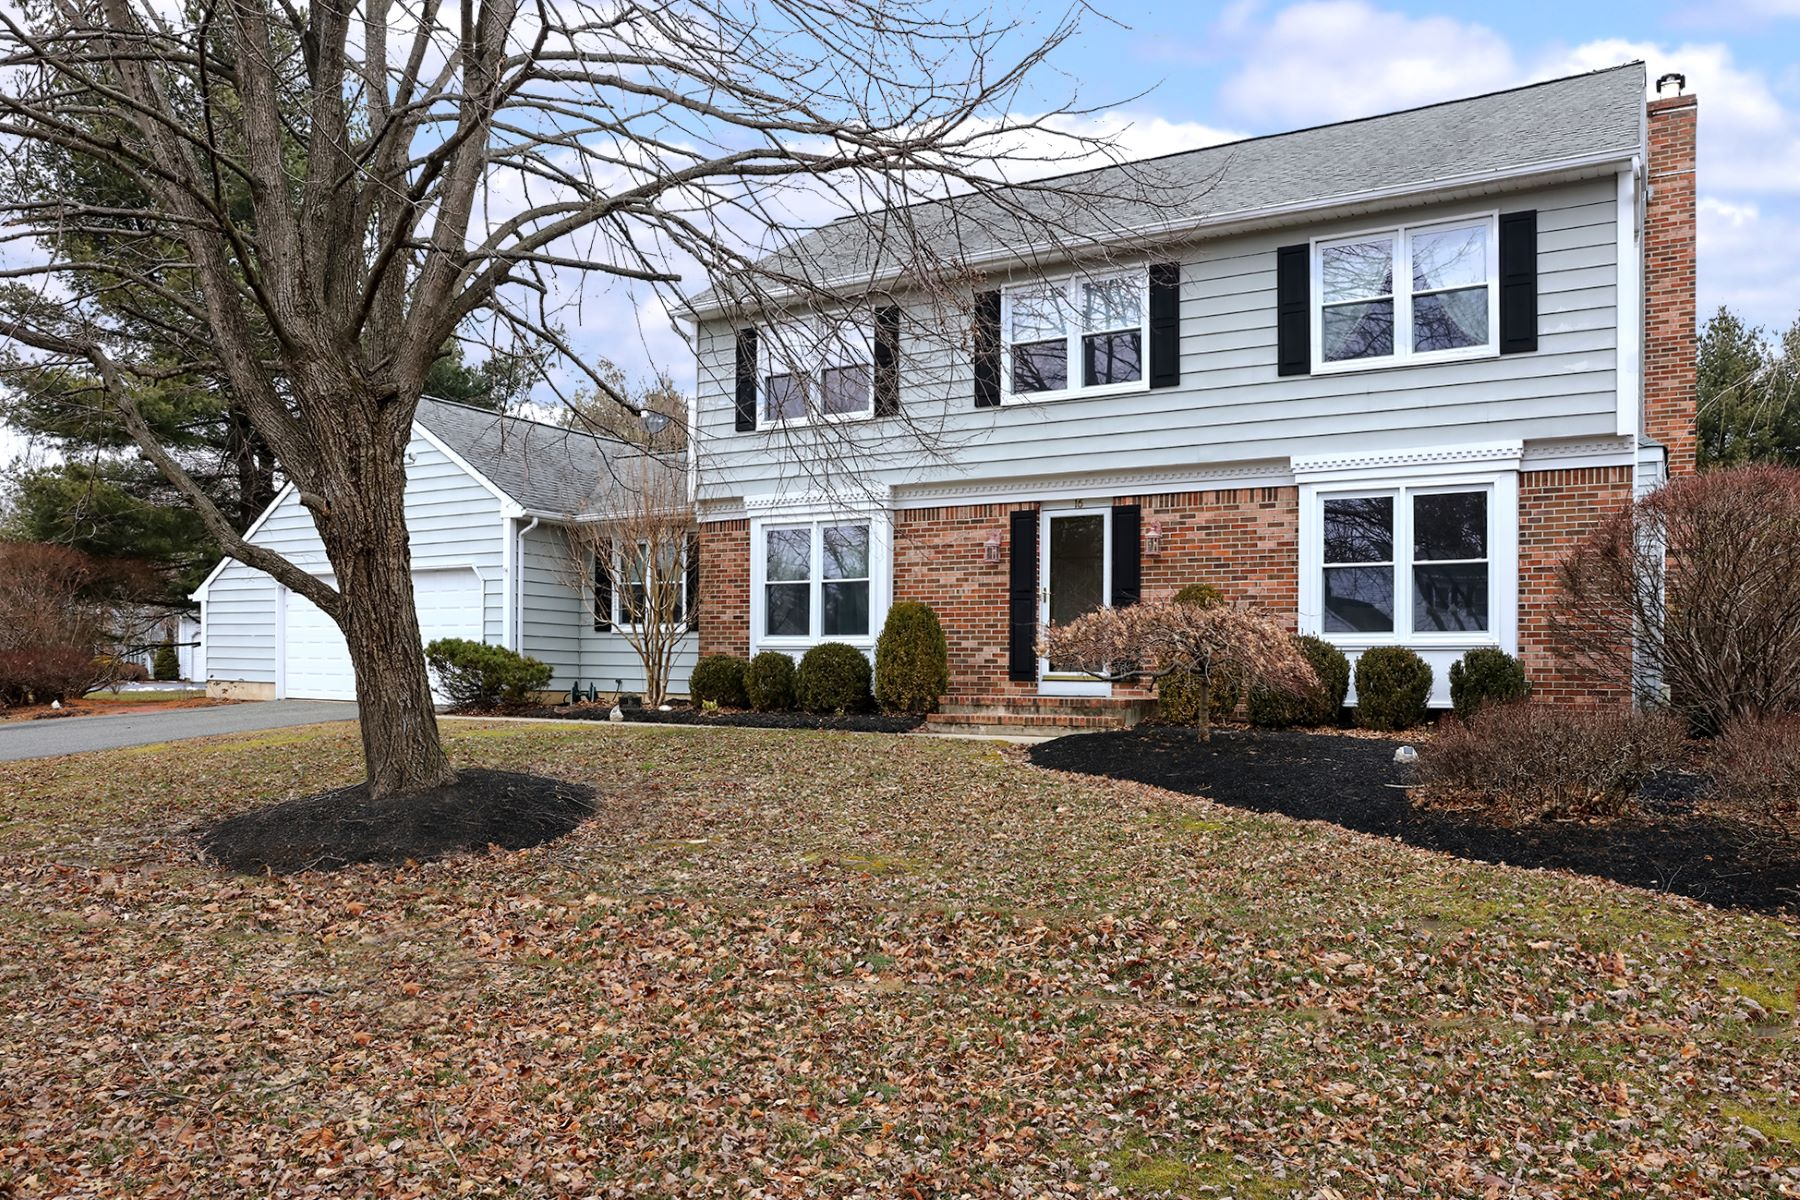 Single Family Homes için Satış at Dutch Neck Colonial Is the Definition of Home 16 Greenfield Drive South, Princeton Junction, New Jersey 08850 Amerika Birleşik Devletleri